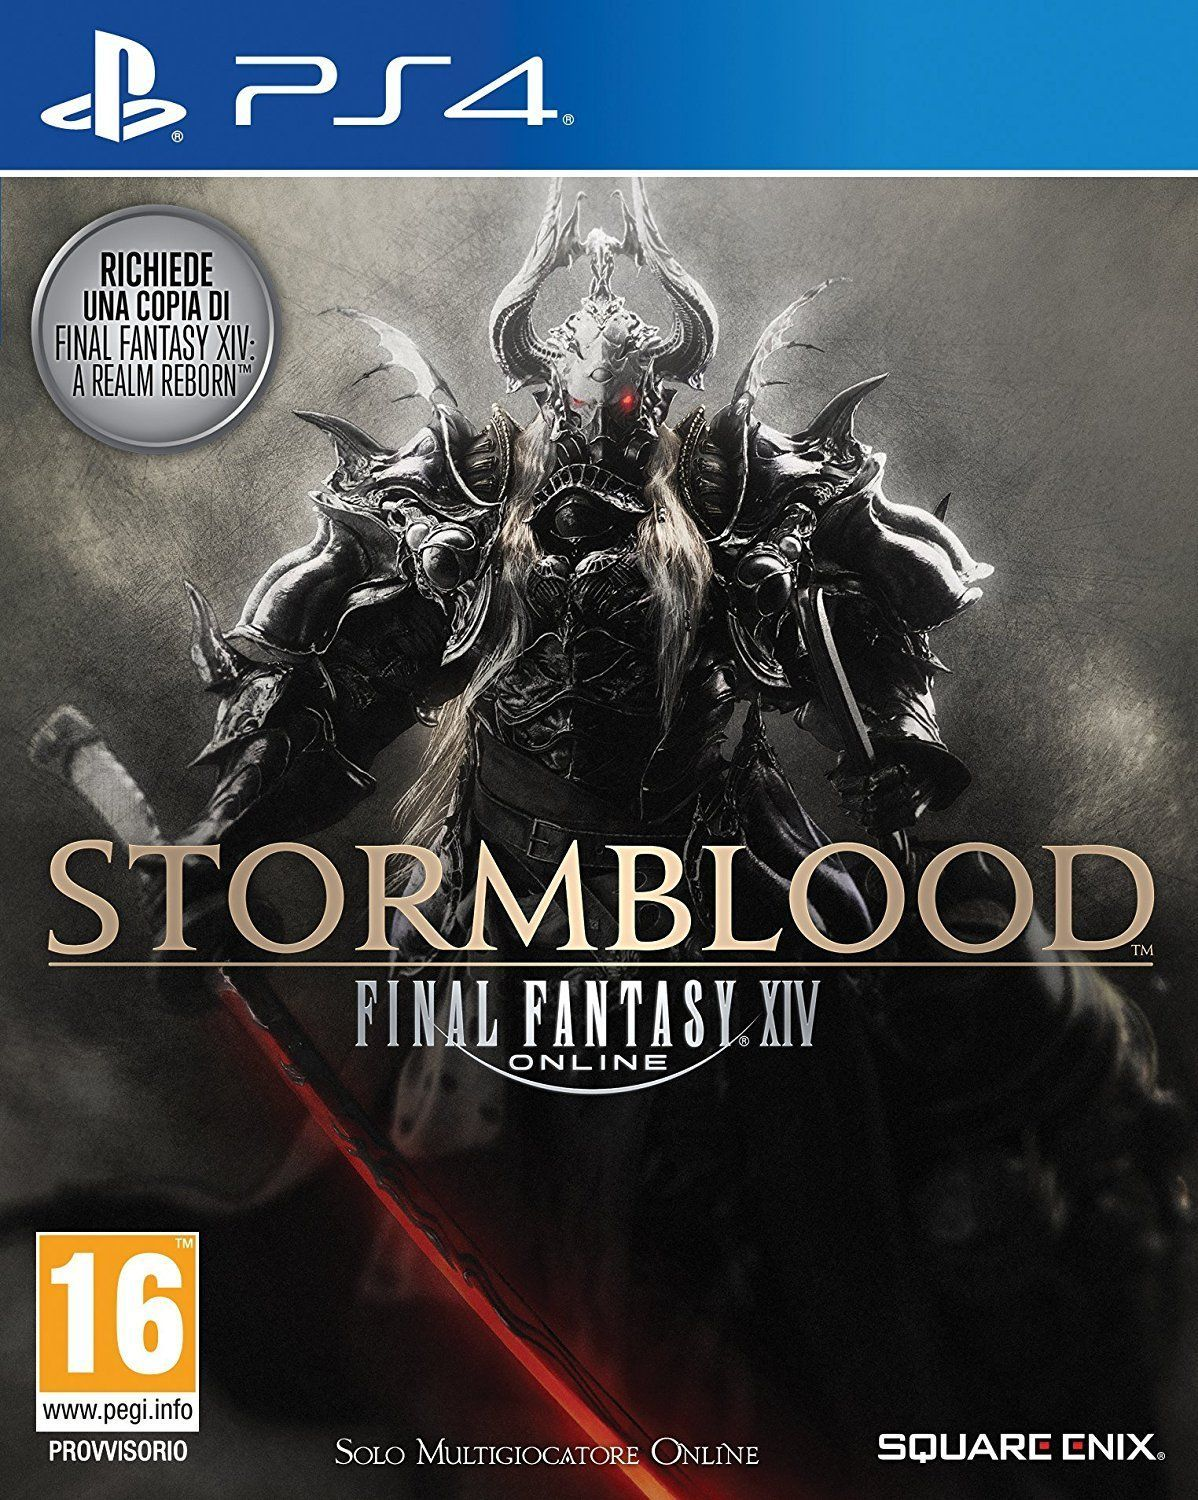 Final Fantasy XIV Stormblood PS4 Portada